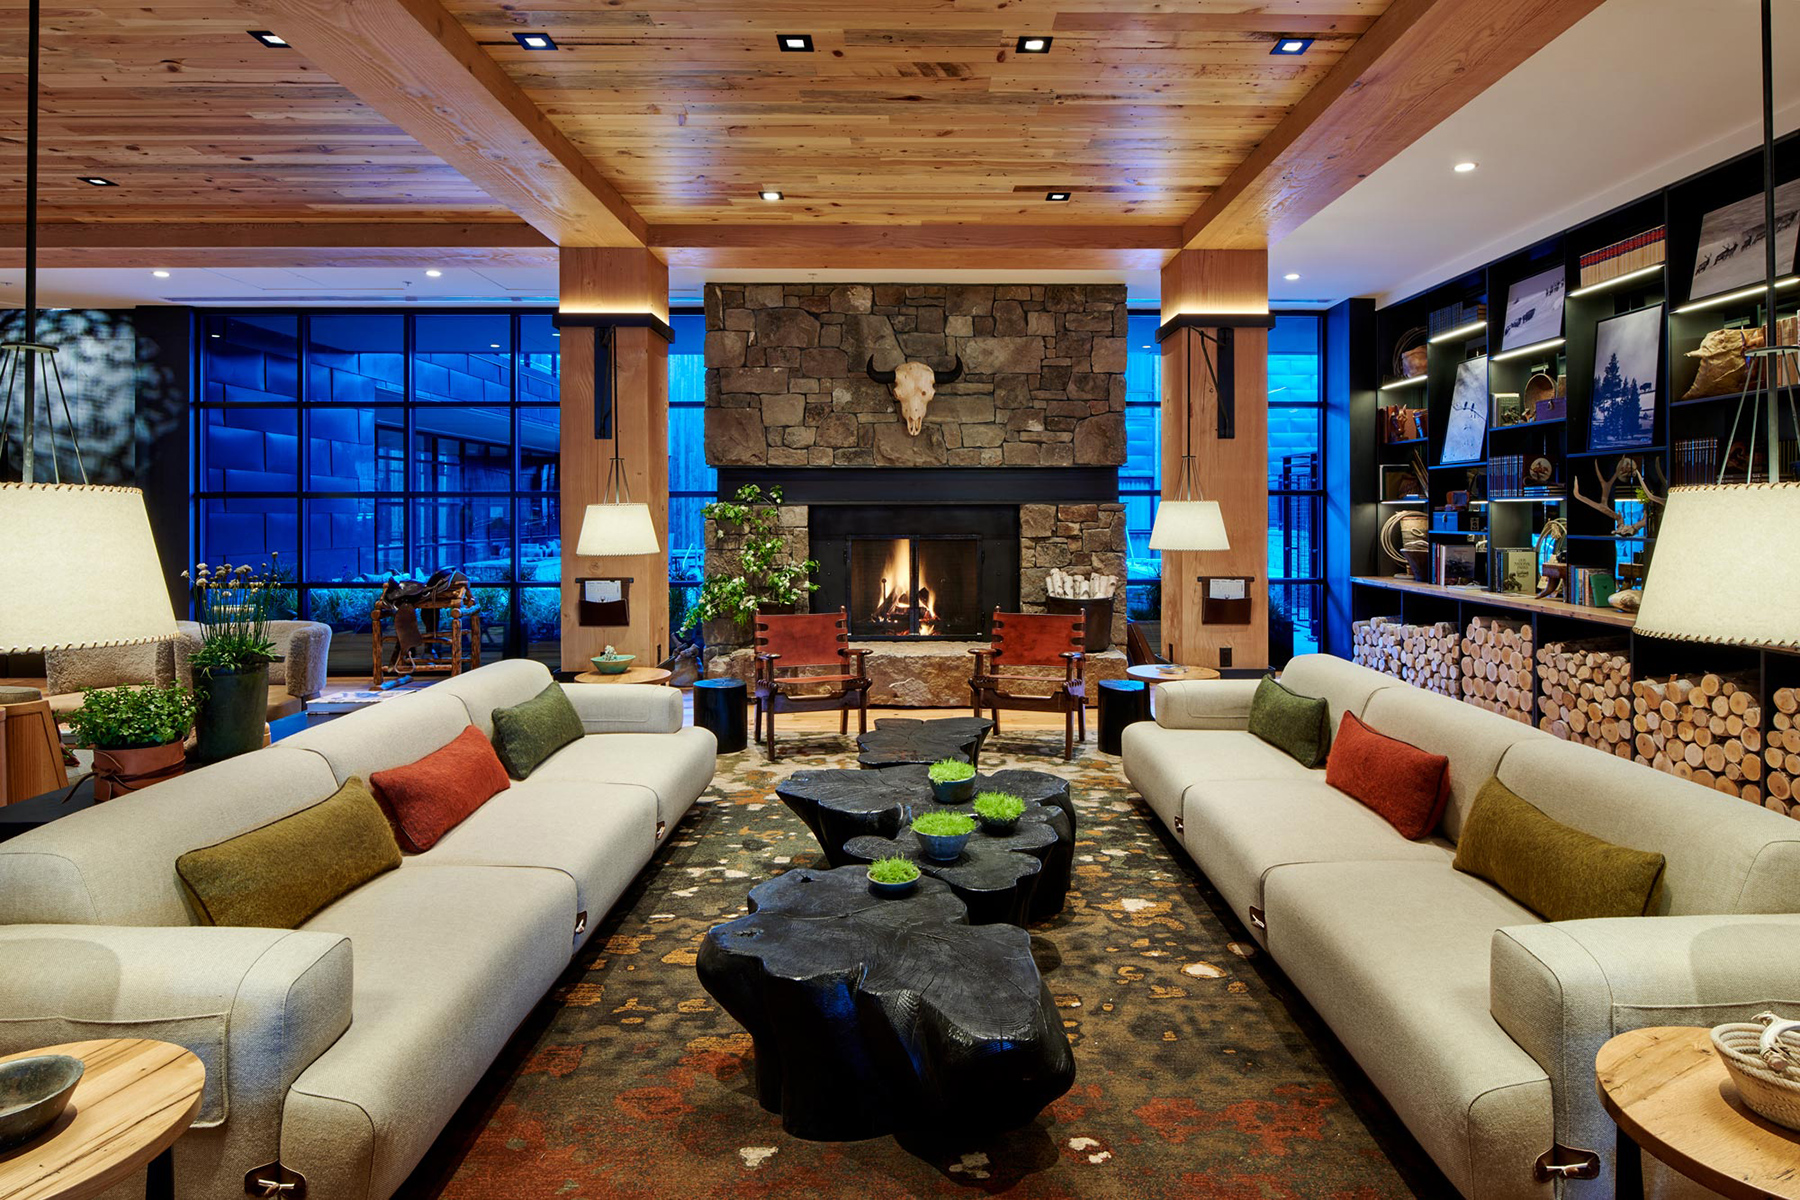 Interior of the lobby at The Cloudveil